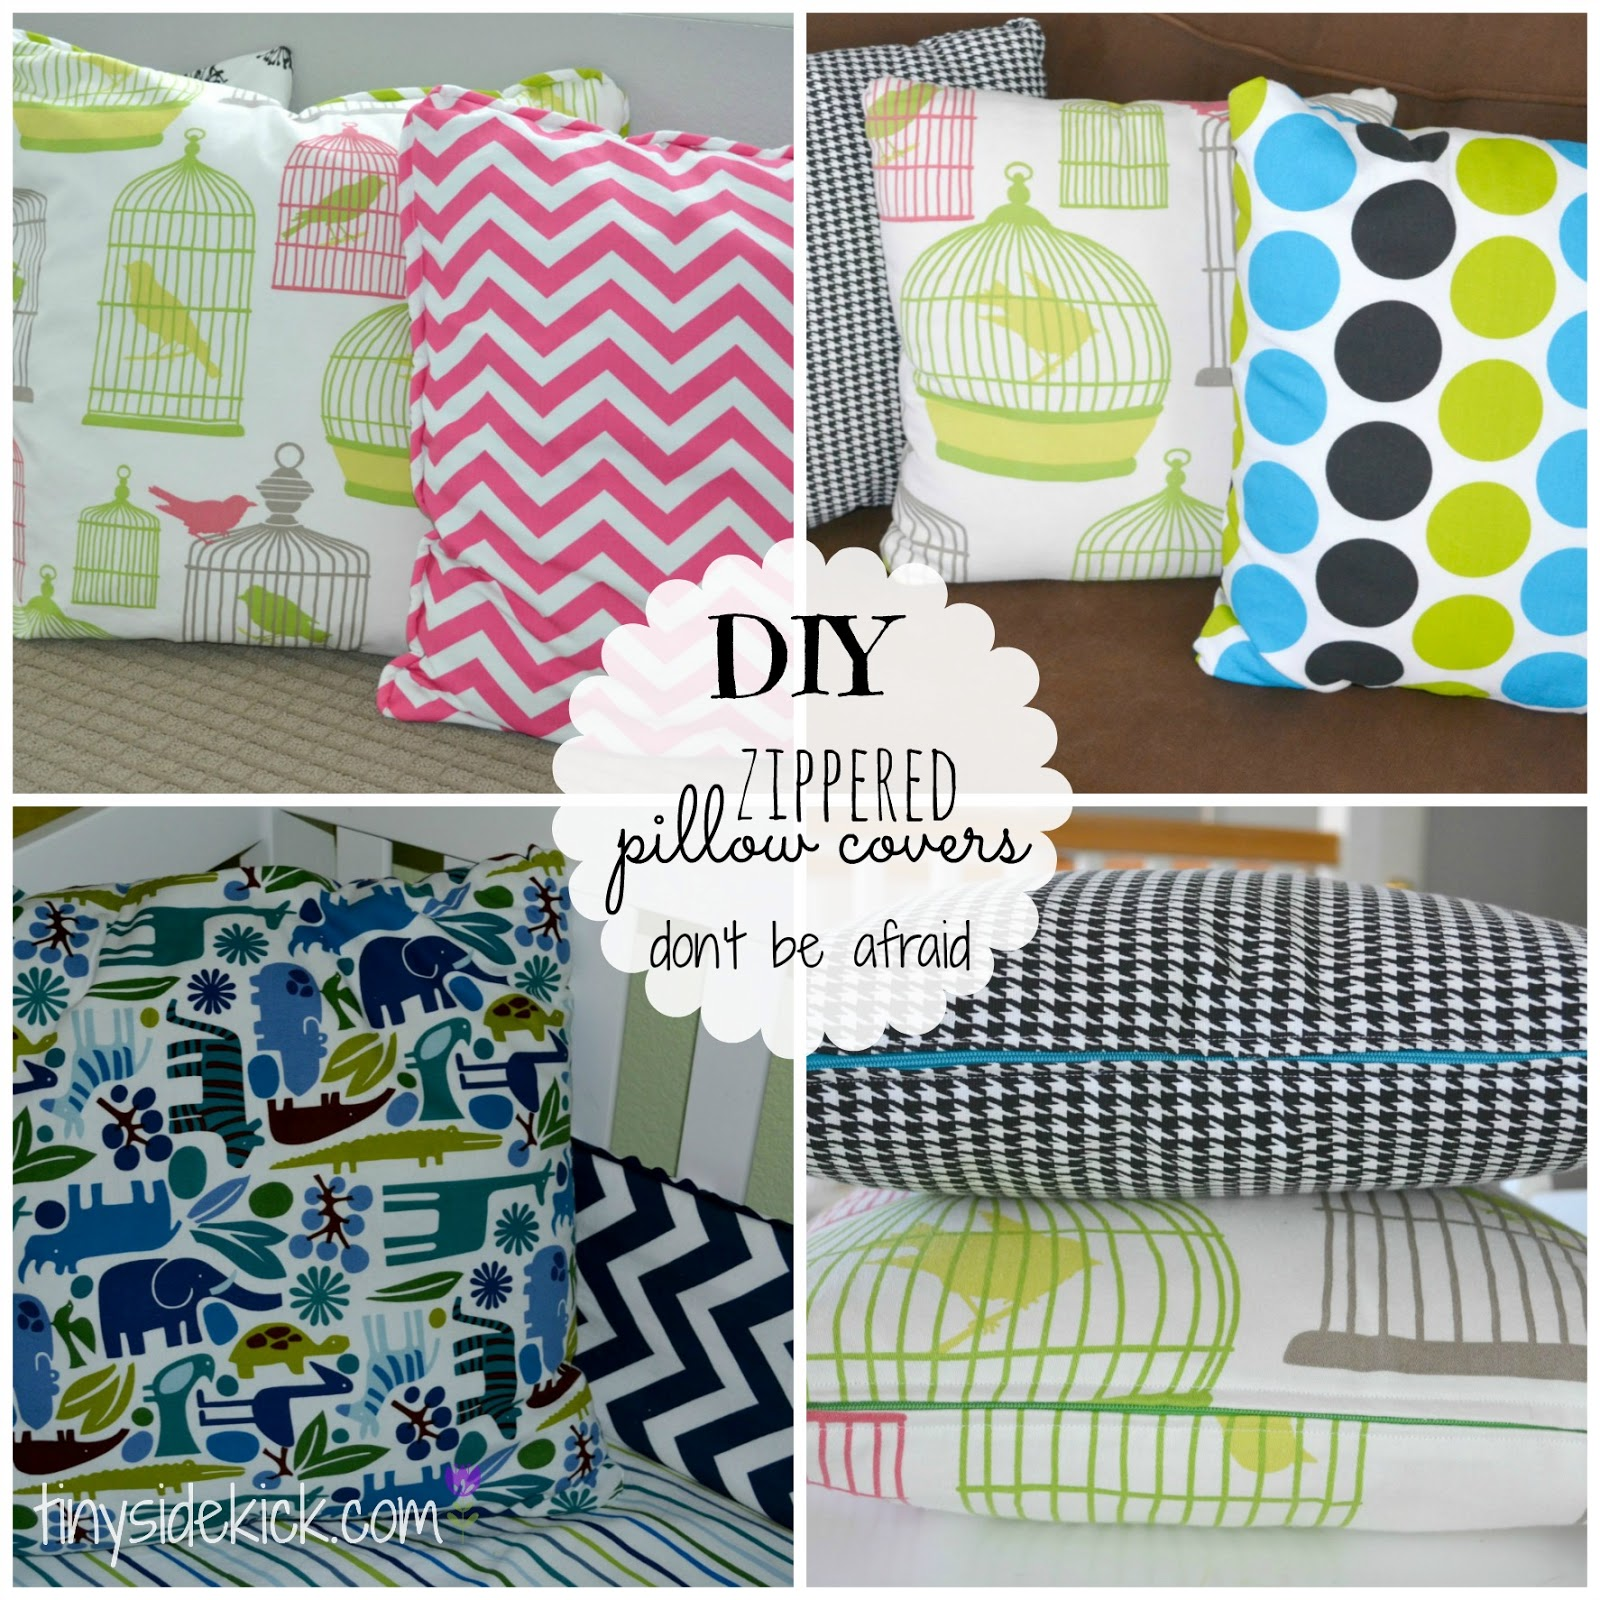 DIY Zippered Pillow Covers | Install a zipper | washable pillow covers